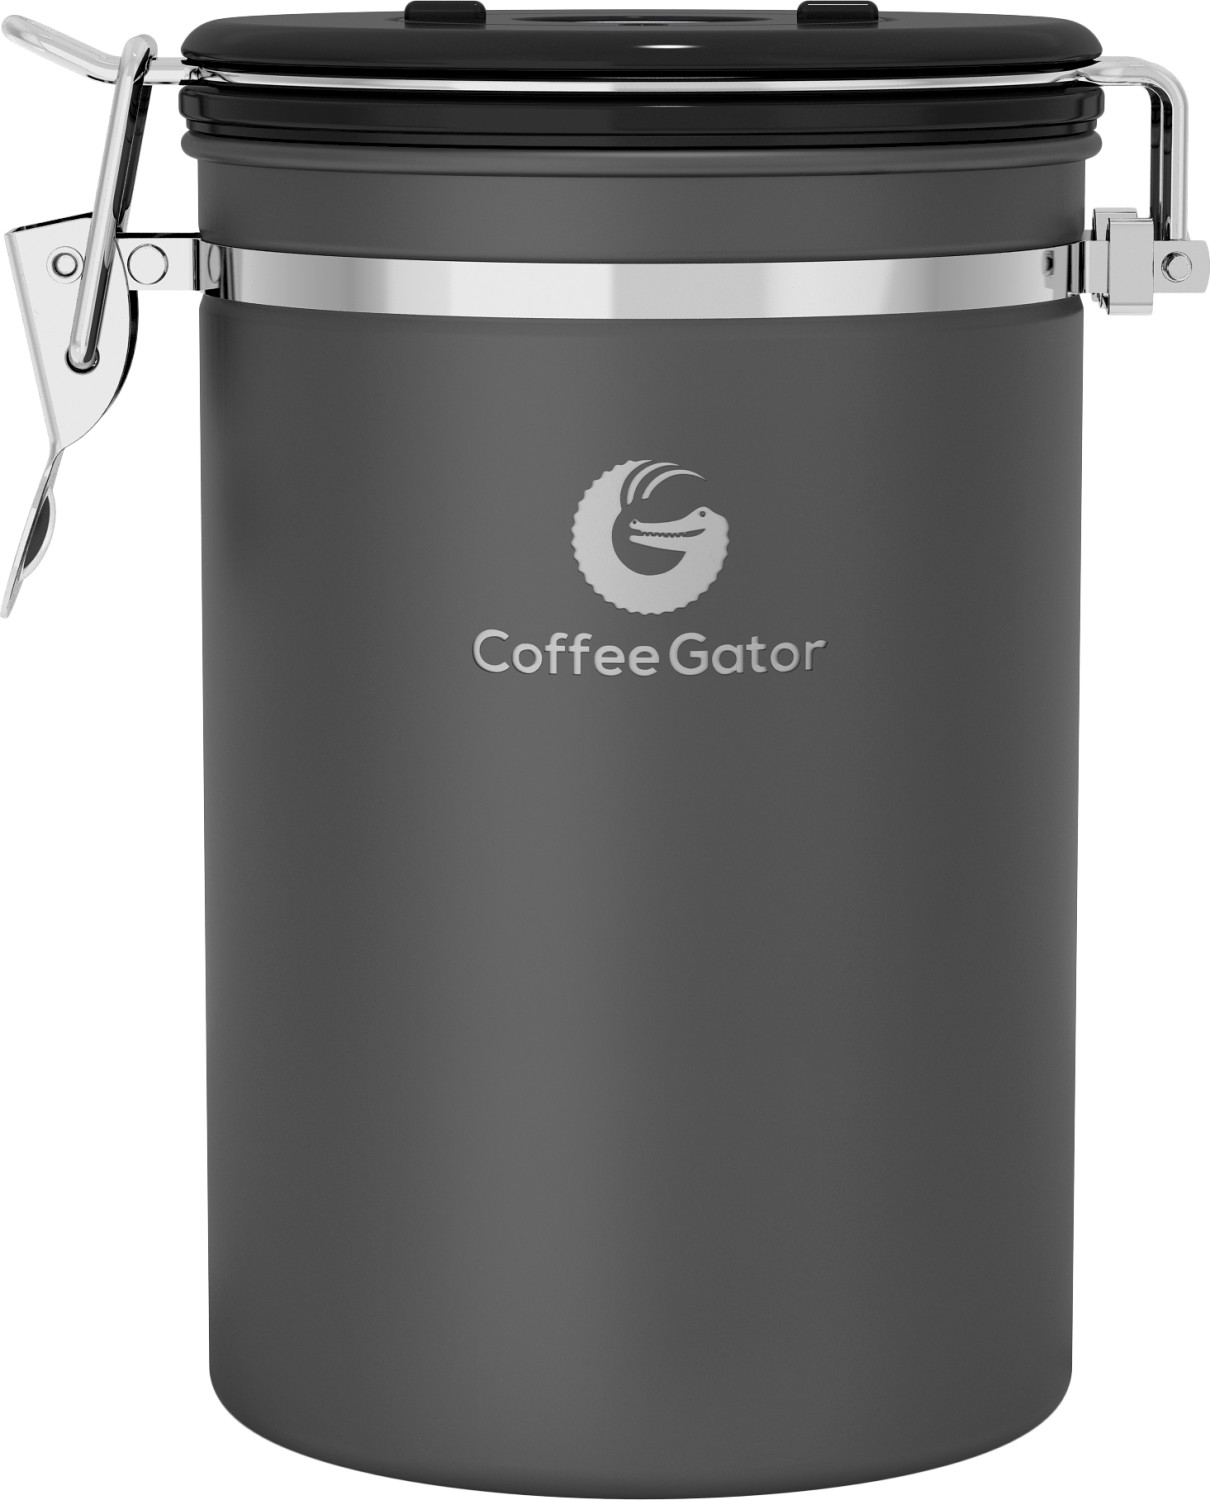 Image of Coffee Gator Stainless Steel Coffee Canister Large